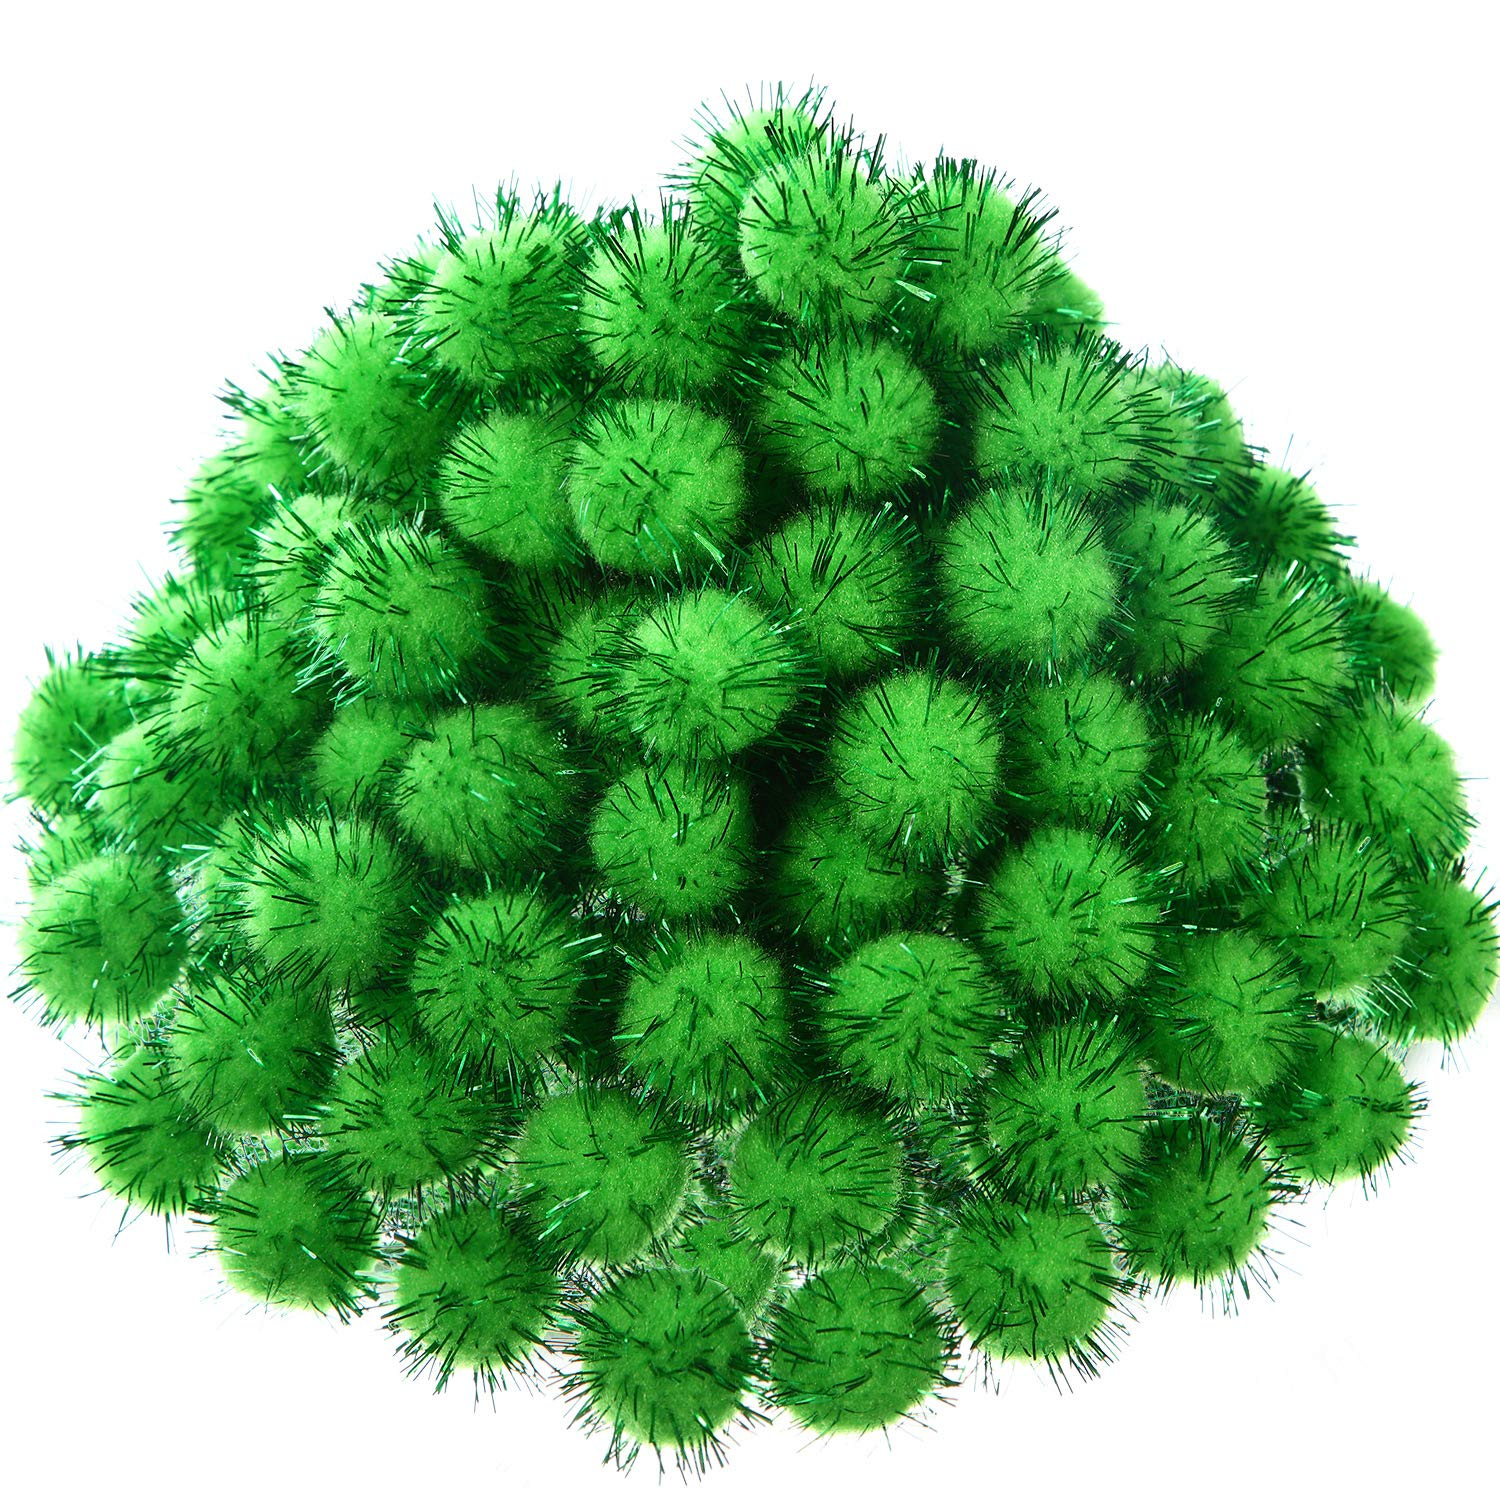 500 Pieces Glitter Pompoms 1 Inch Fuzzy Pom Poms Arts and Crafts Making Balls for Hobby Supplies and Craft DIY Decoration Black